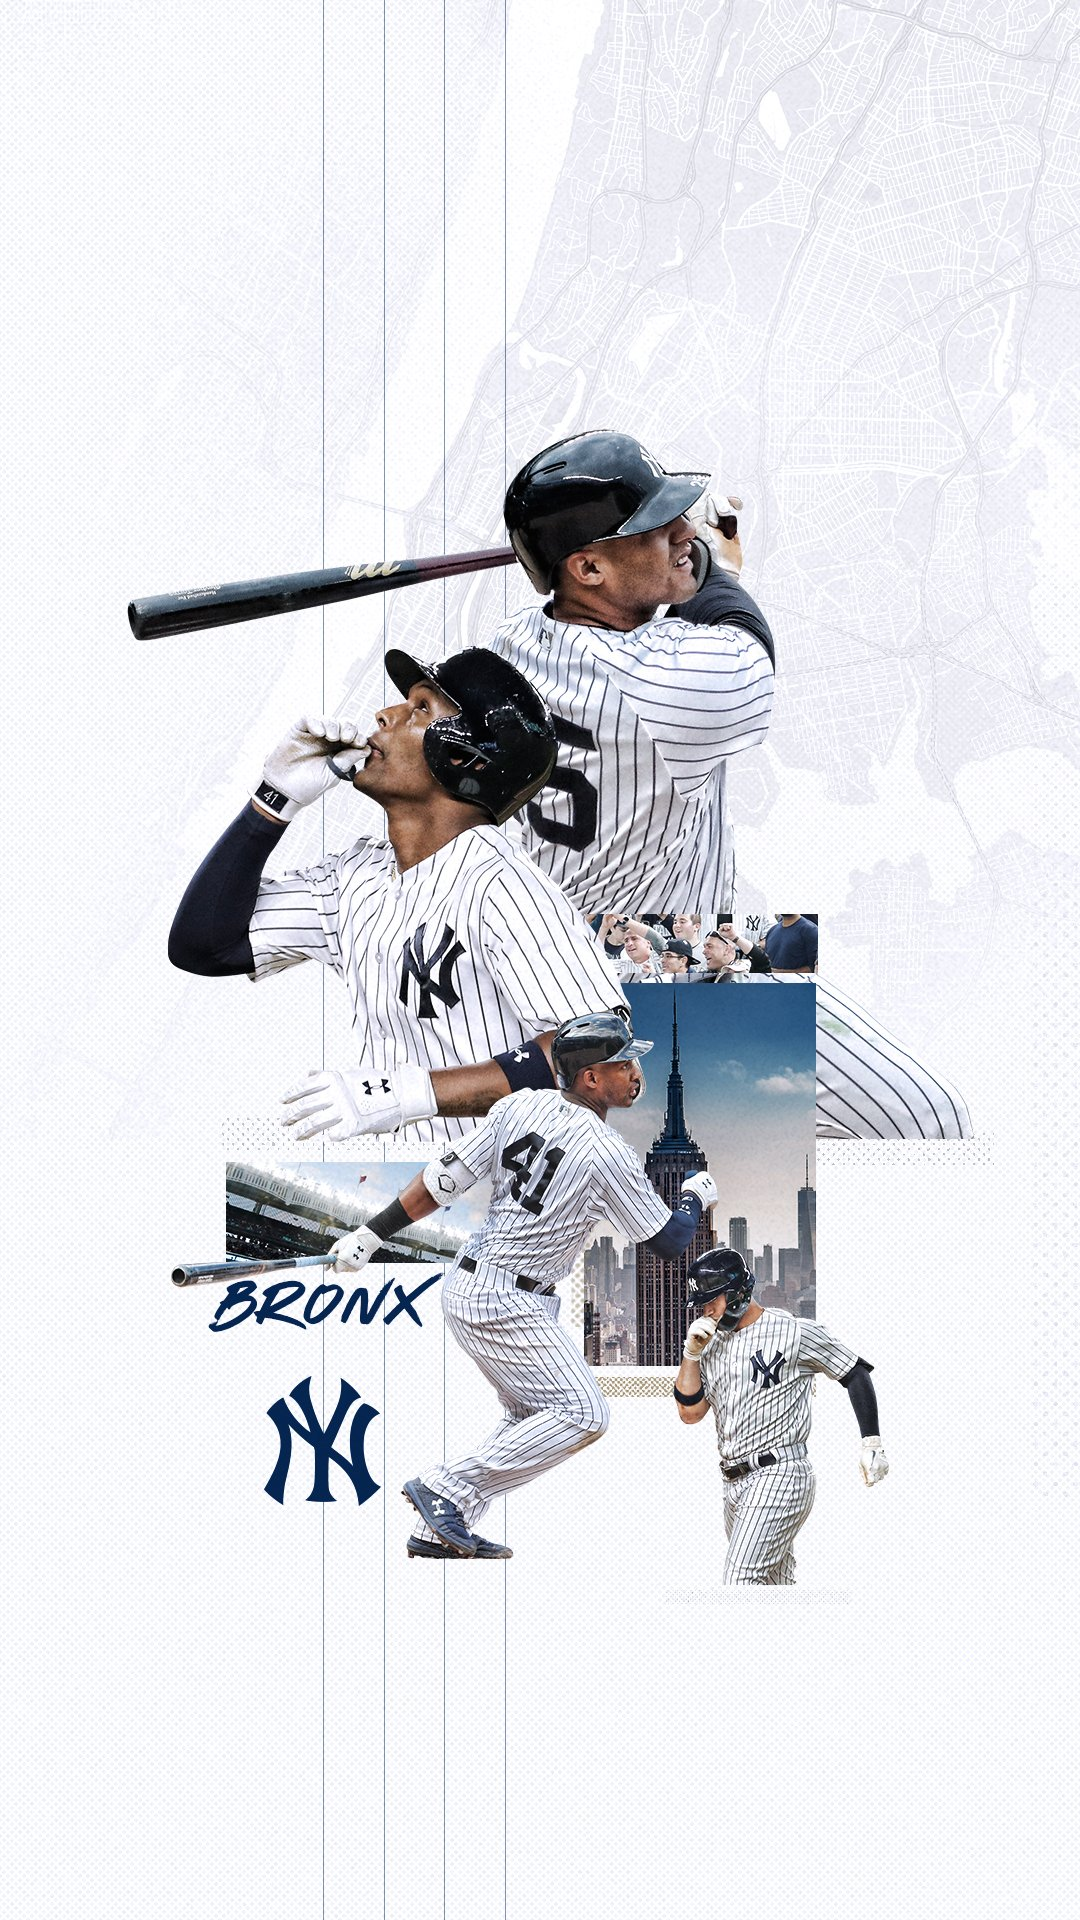 New York Yankees On Twitter A Few Festive Wallpapers To Get You Into The Openingday Spirit